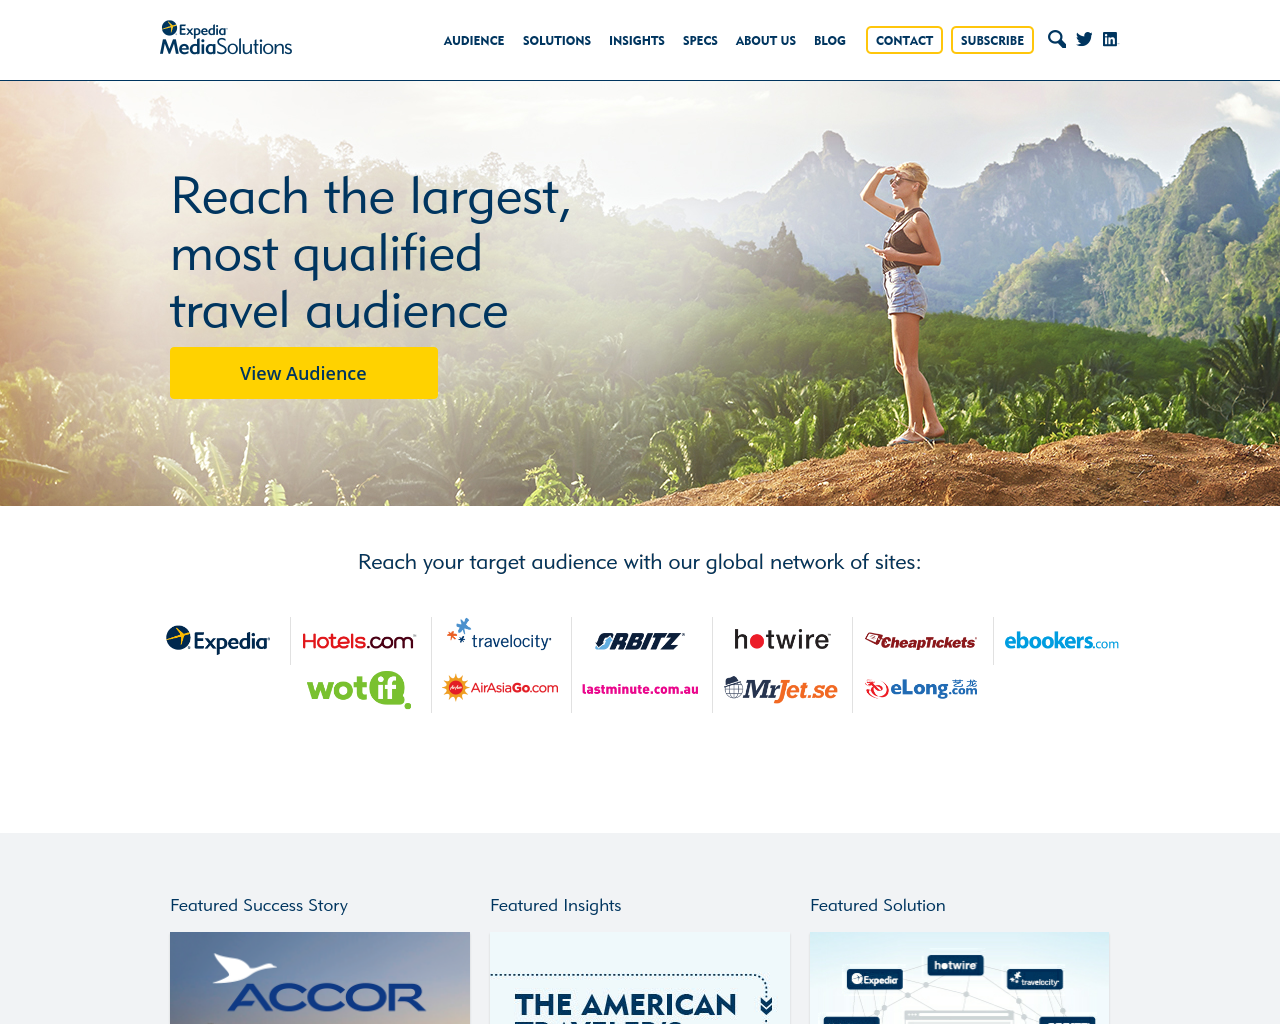 Travelocity-Advertising-Reviews-Pricing